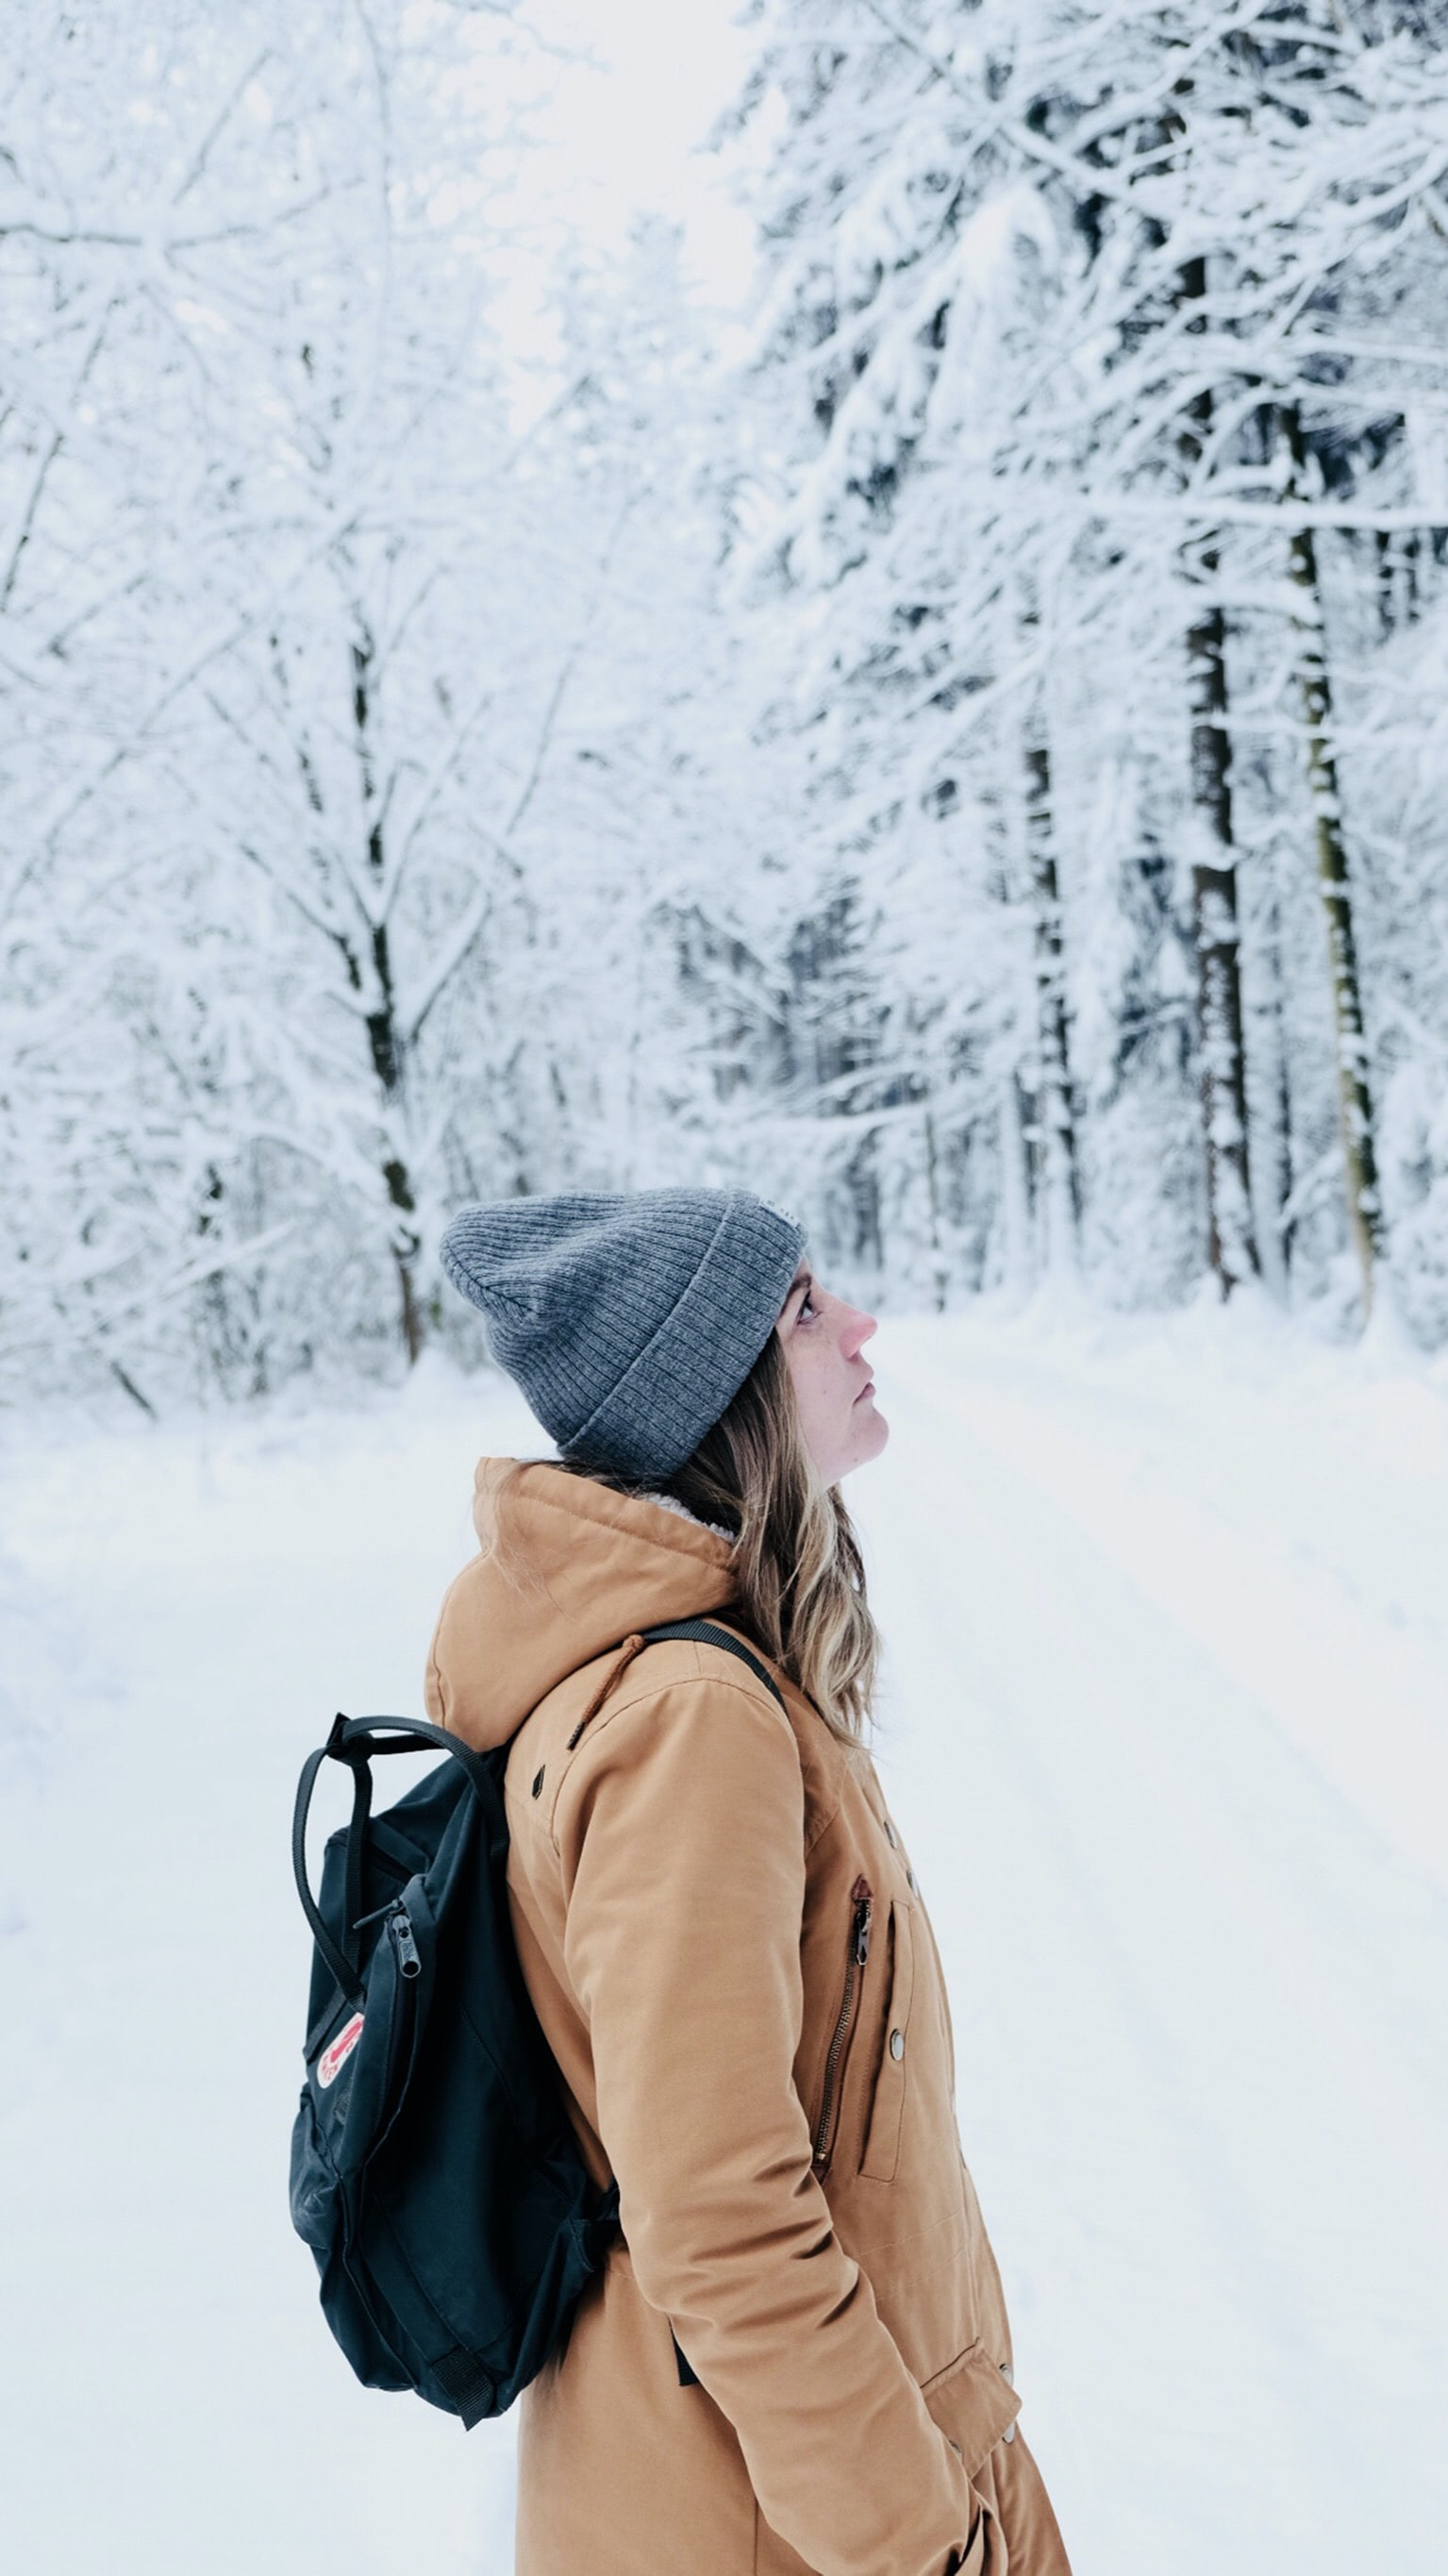 woman walking in snow covered forest